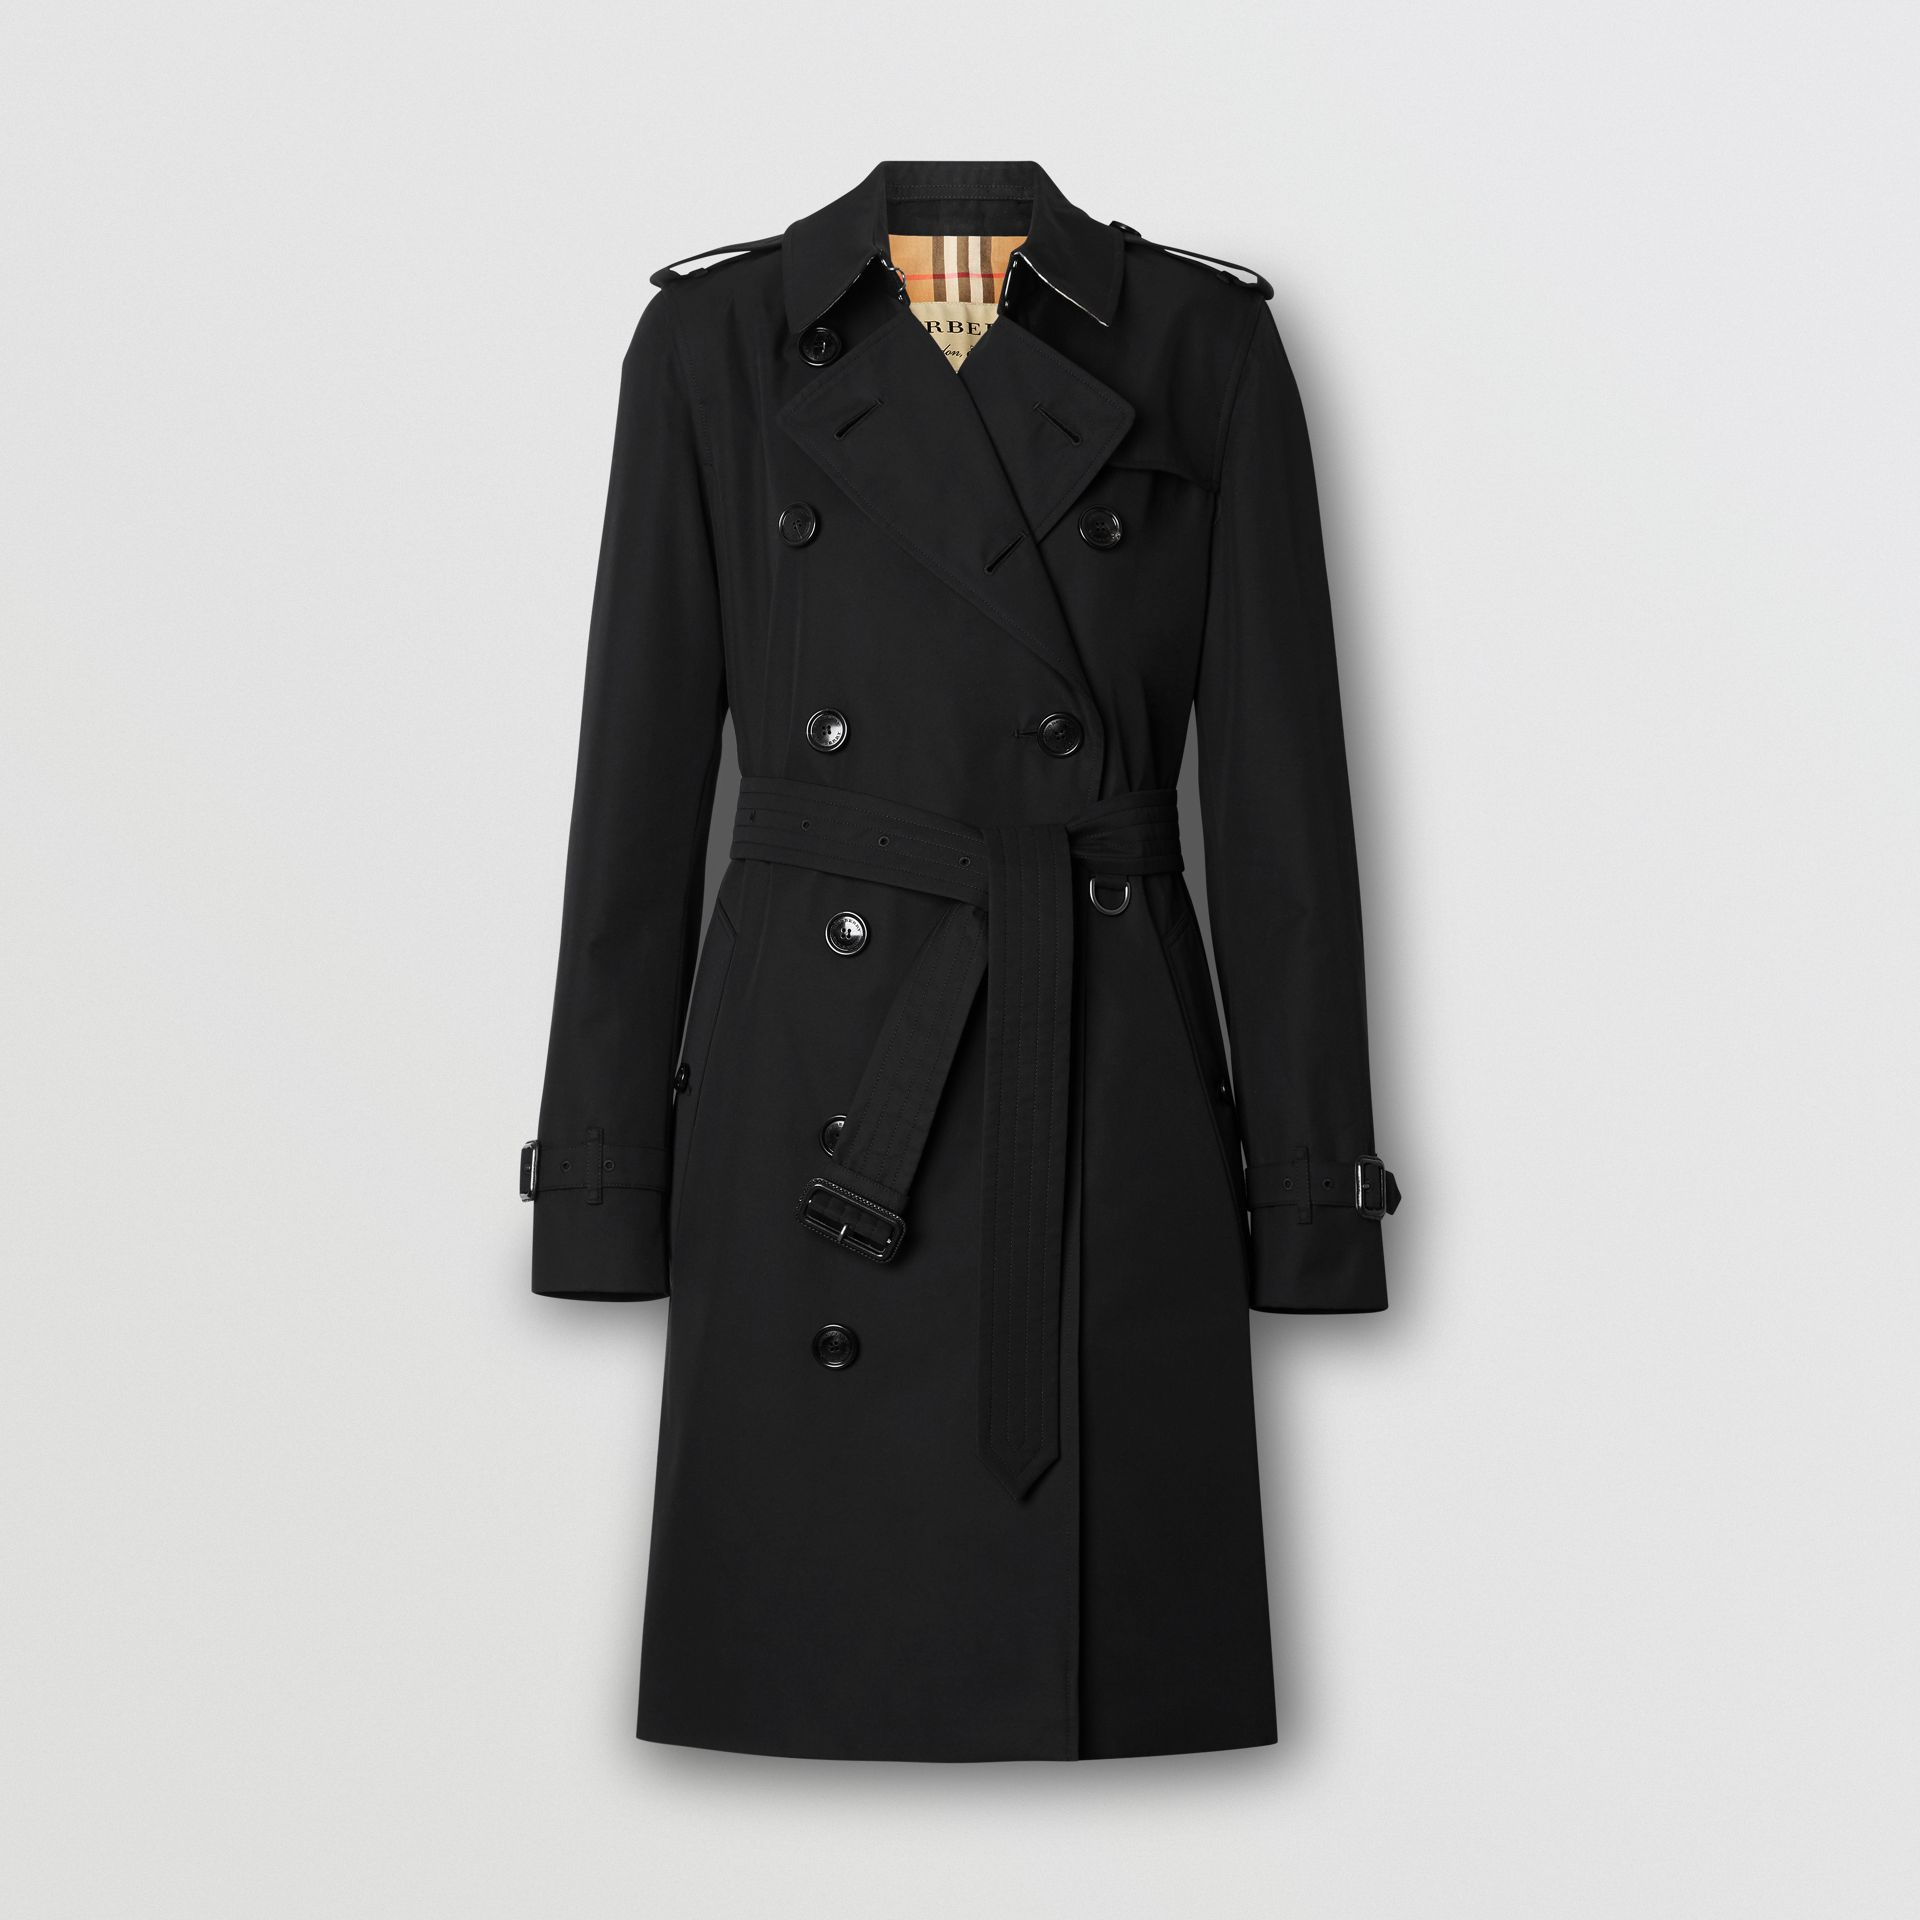 Kensington Fit Cotton Gabardine Trench Coat in Black - Women | Burberry - gallery image 3